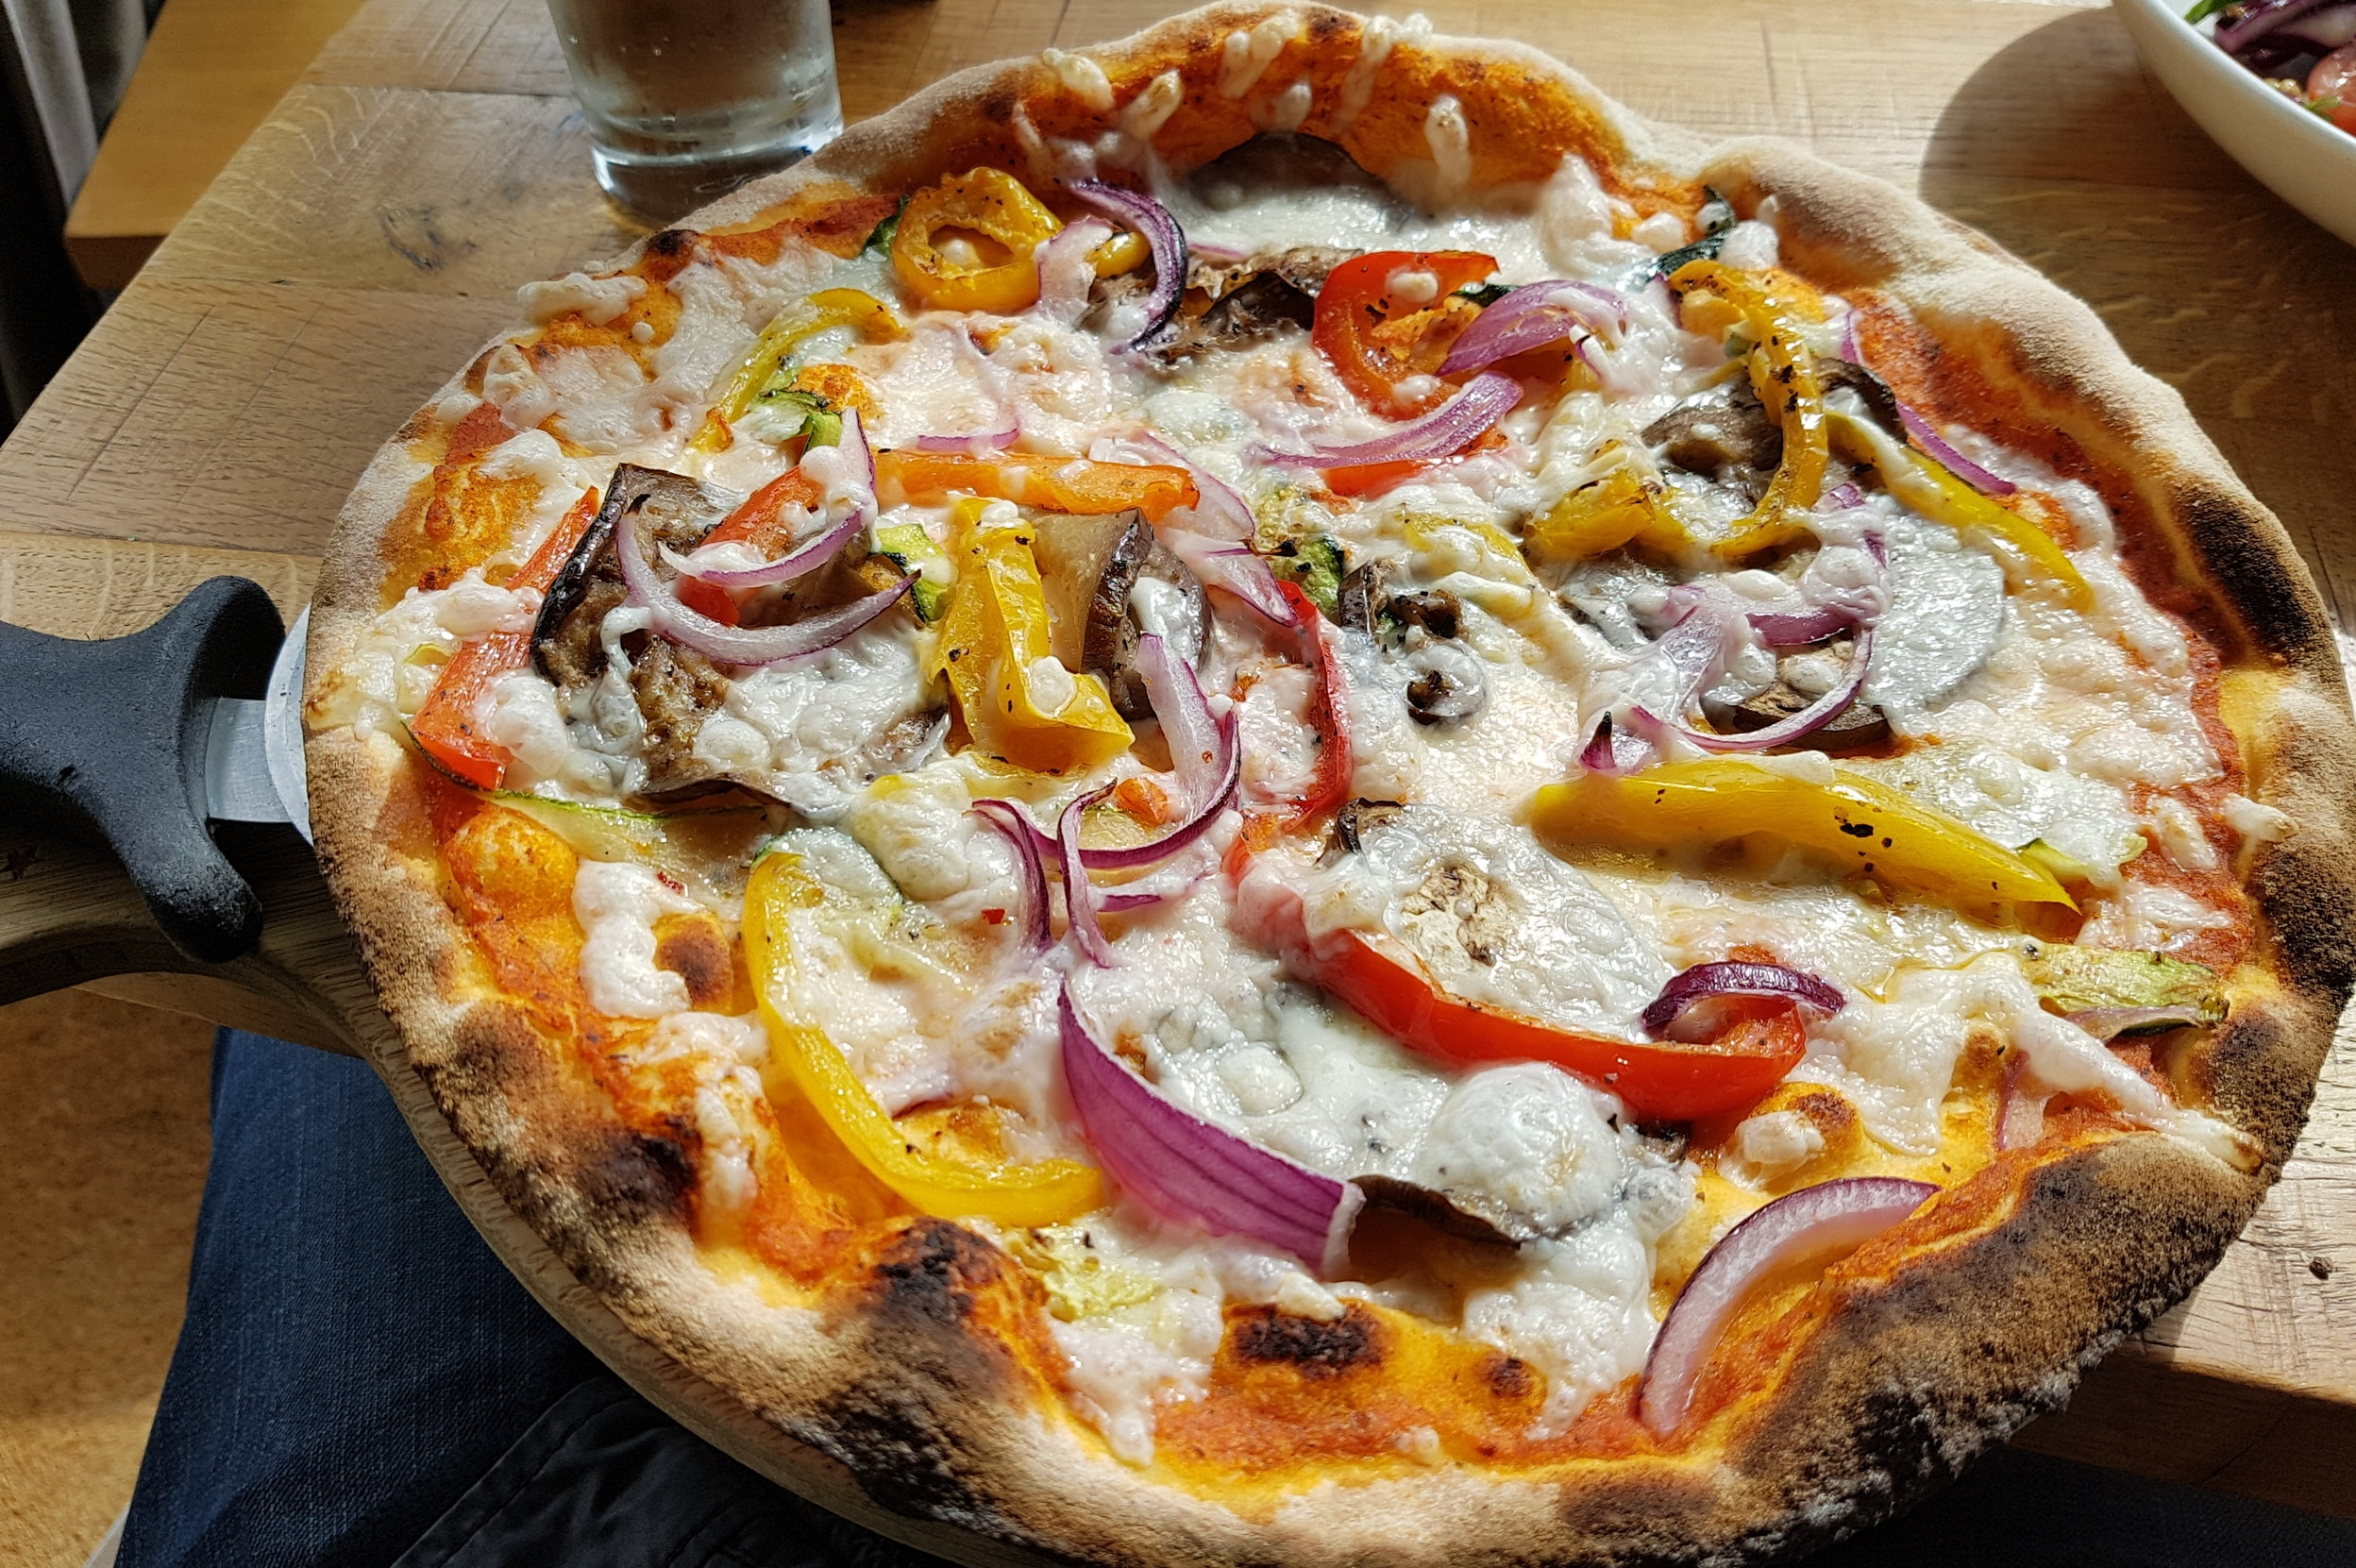 The Good Life | roasted courgette, aubergine, roasted red & yellow peppers, with onion, vegan cheese and fresh basil